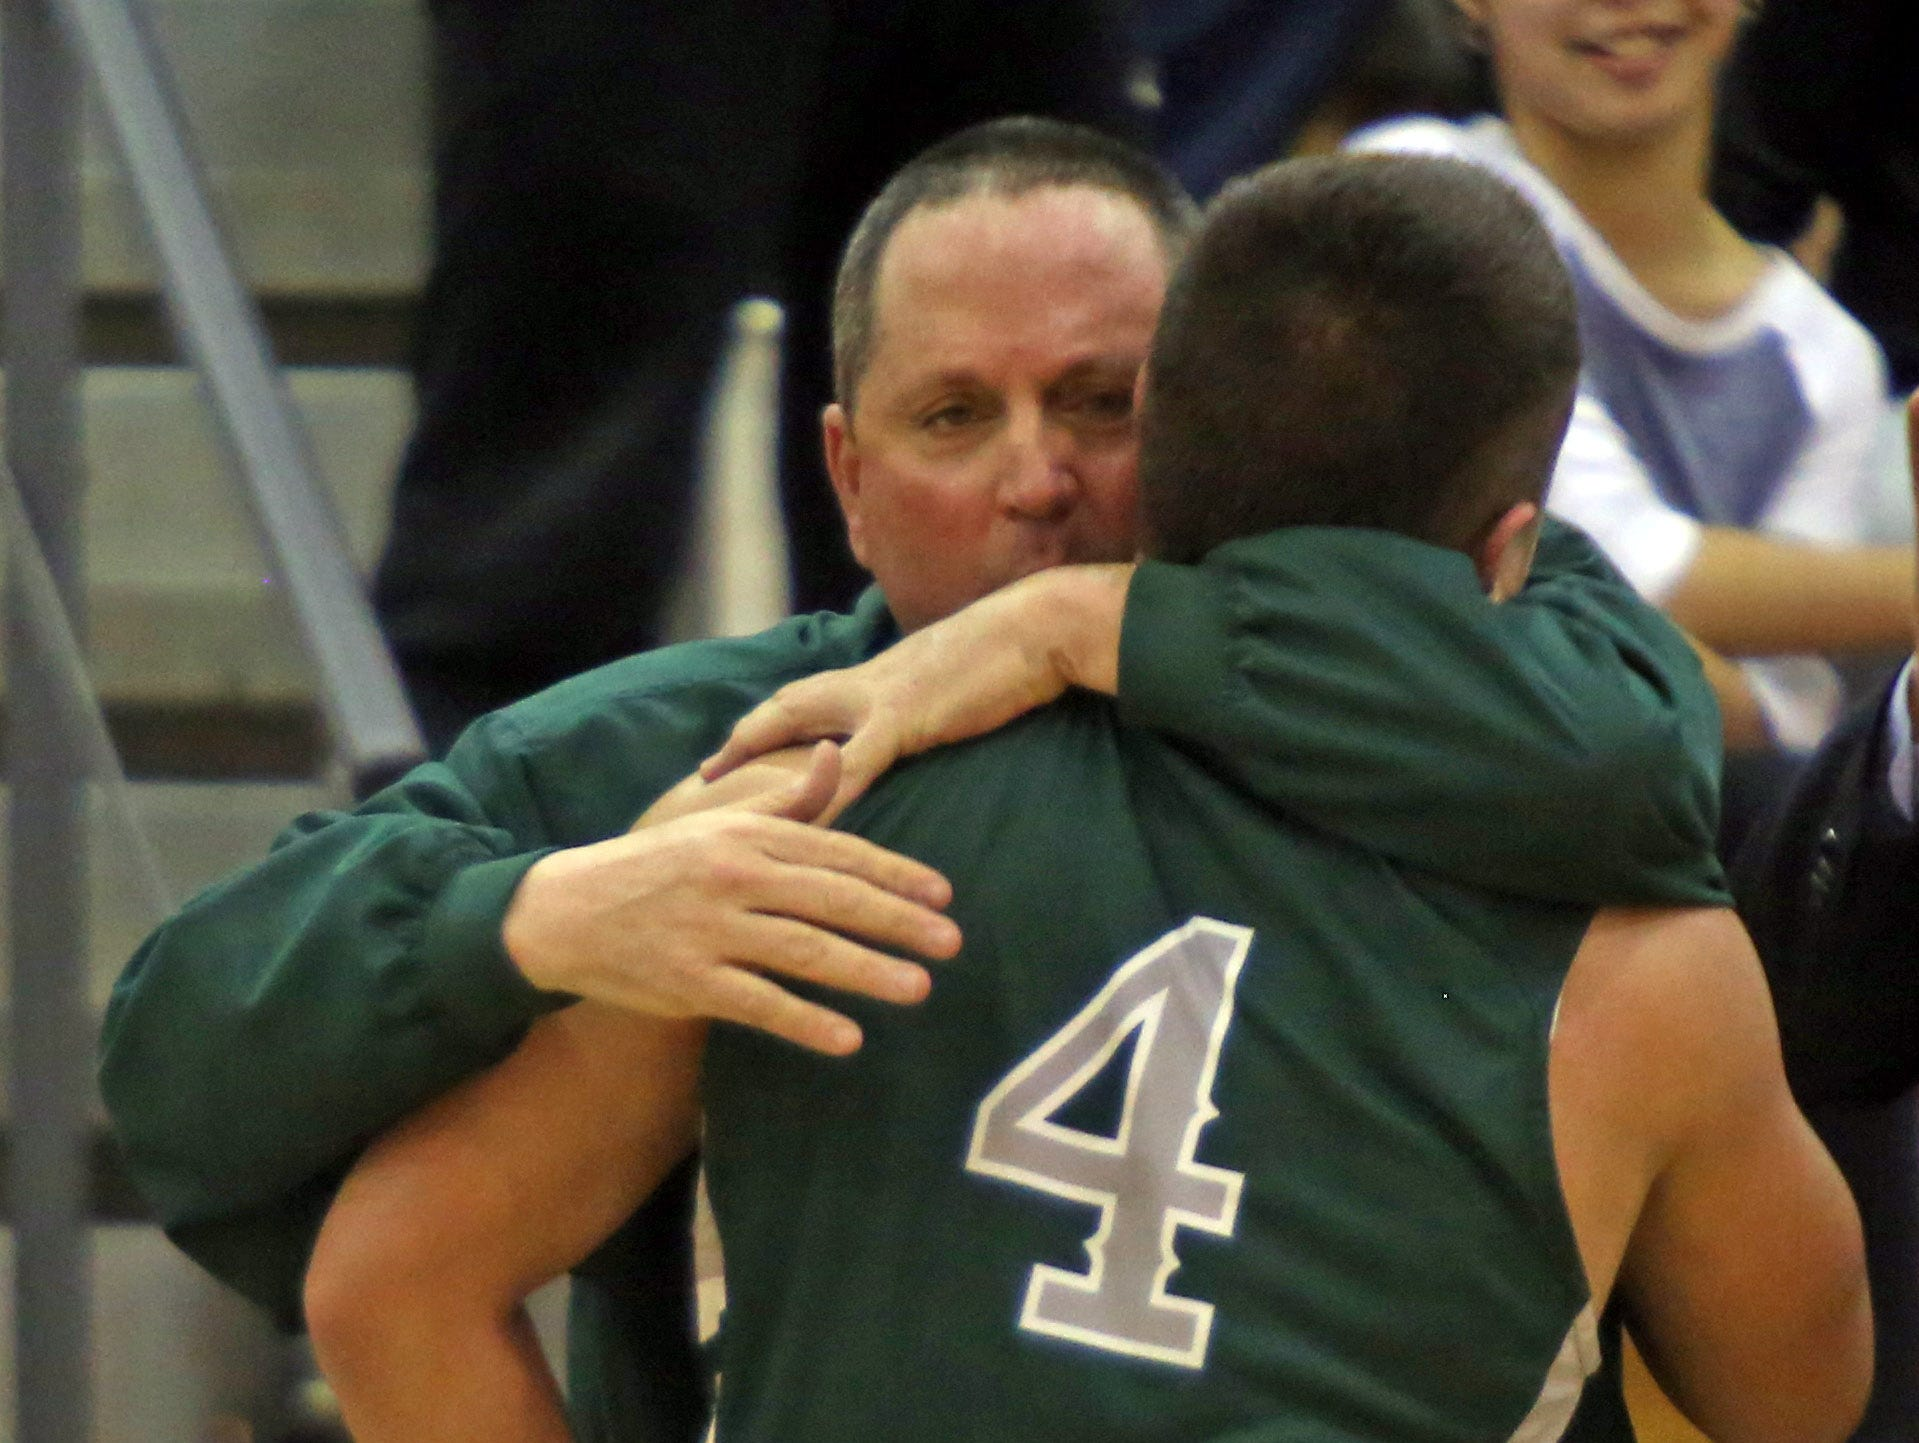 Spackenkill coach Tom Bell hugs Camron Abalos (4) after their 69-50 victory over Pleasantville 69-50 in Class B State Regional semifinals at Yorktown High School March 7, 2017.